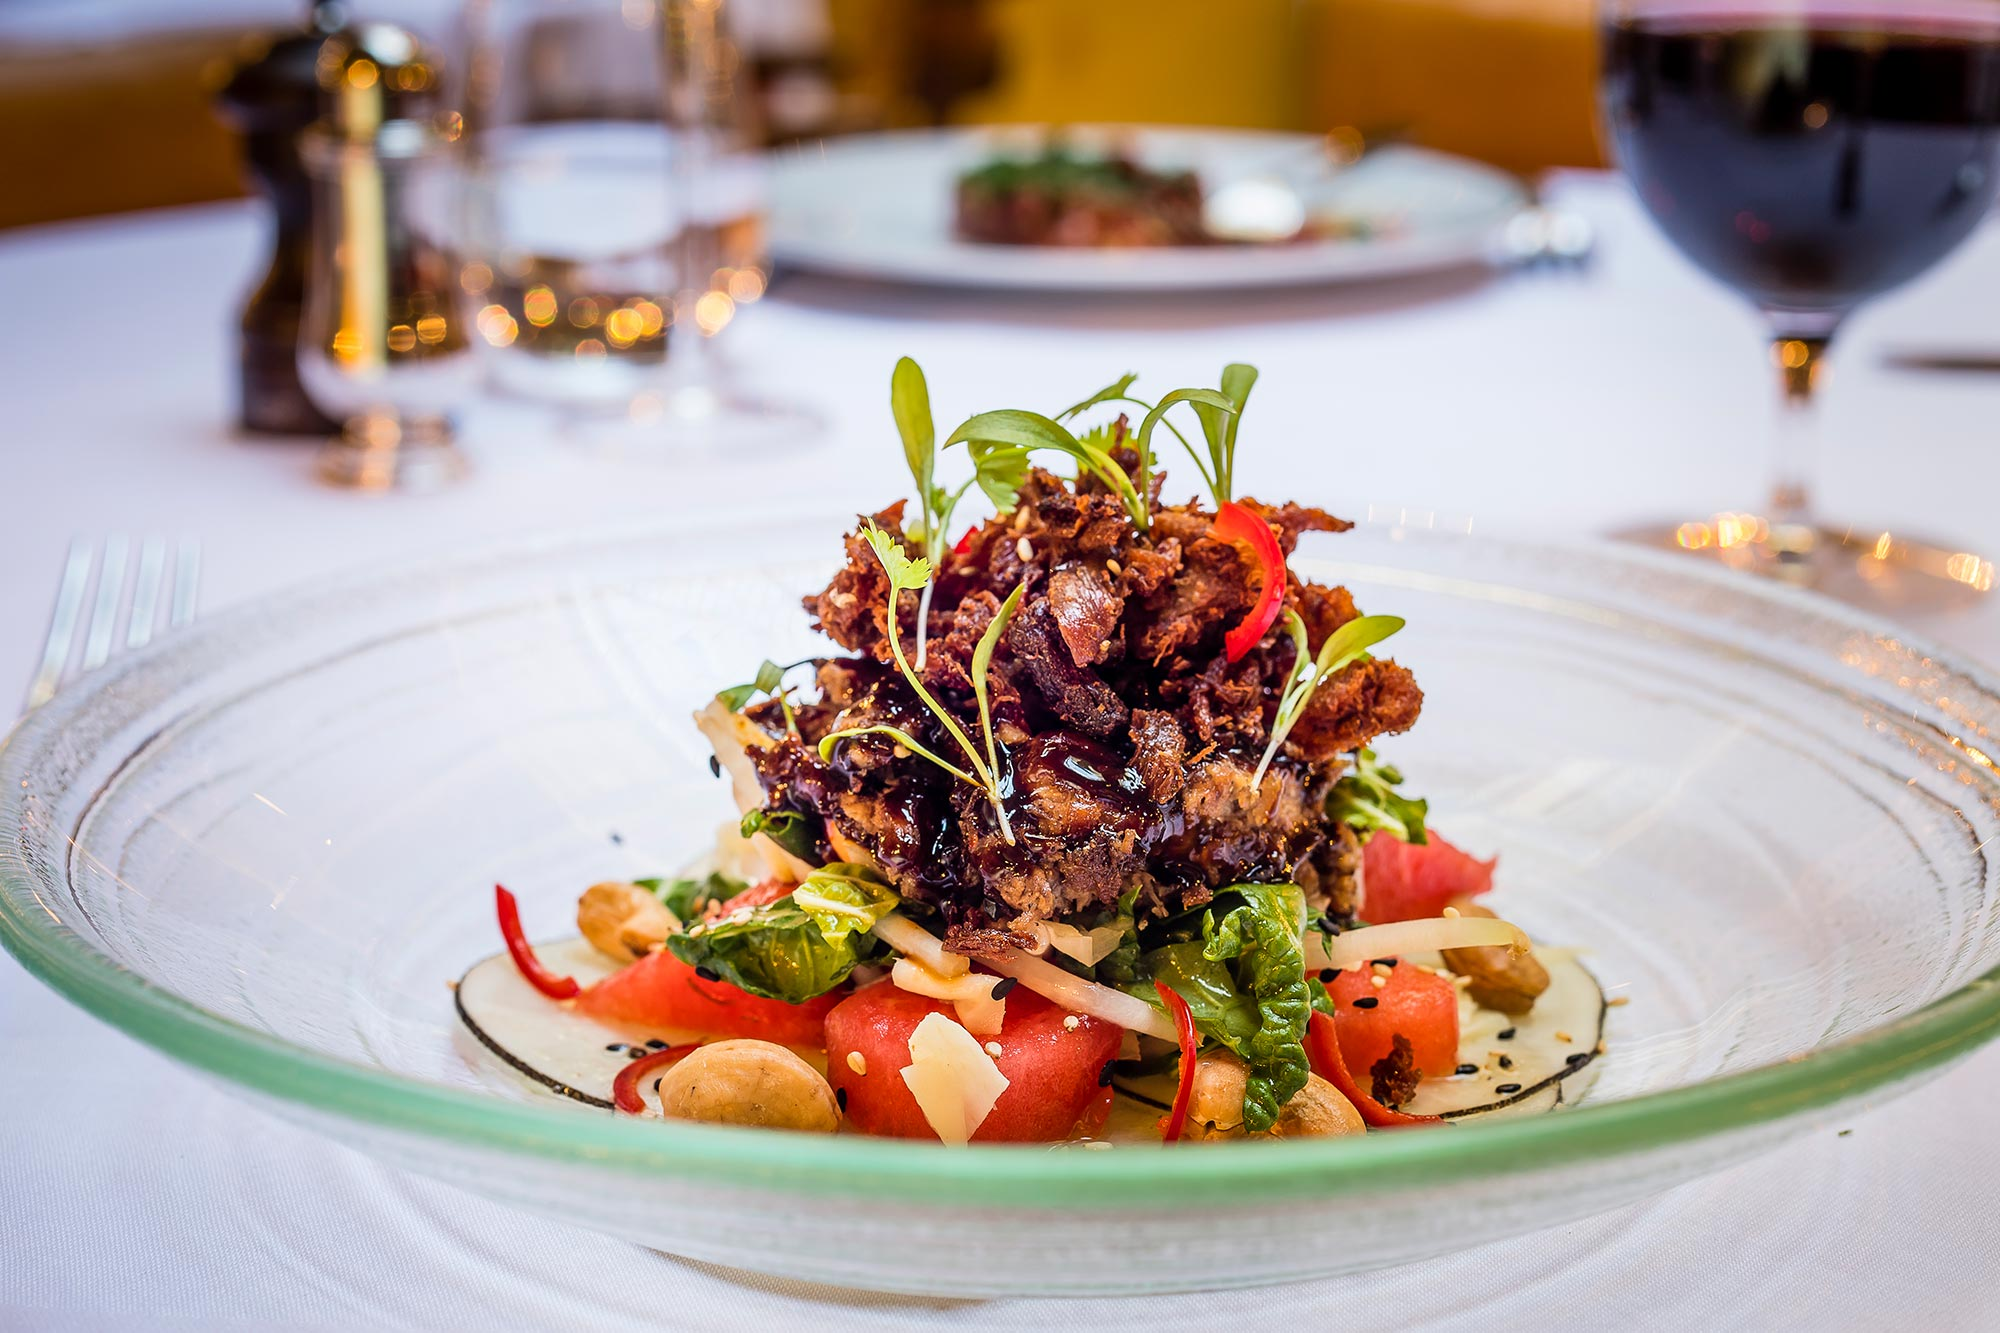 The Ivy Marlow Garden - Crispy Duck Salad, Watermelon and Cashews - The Ivy Marlow Garden